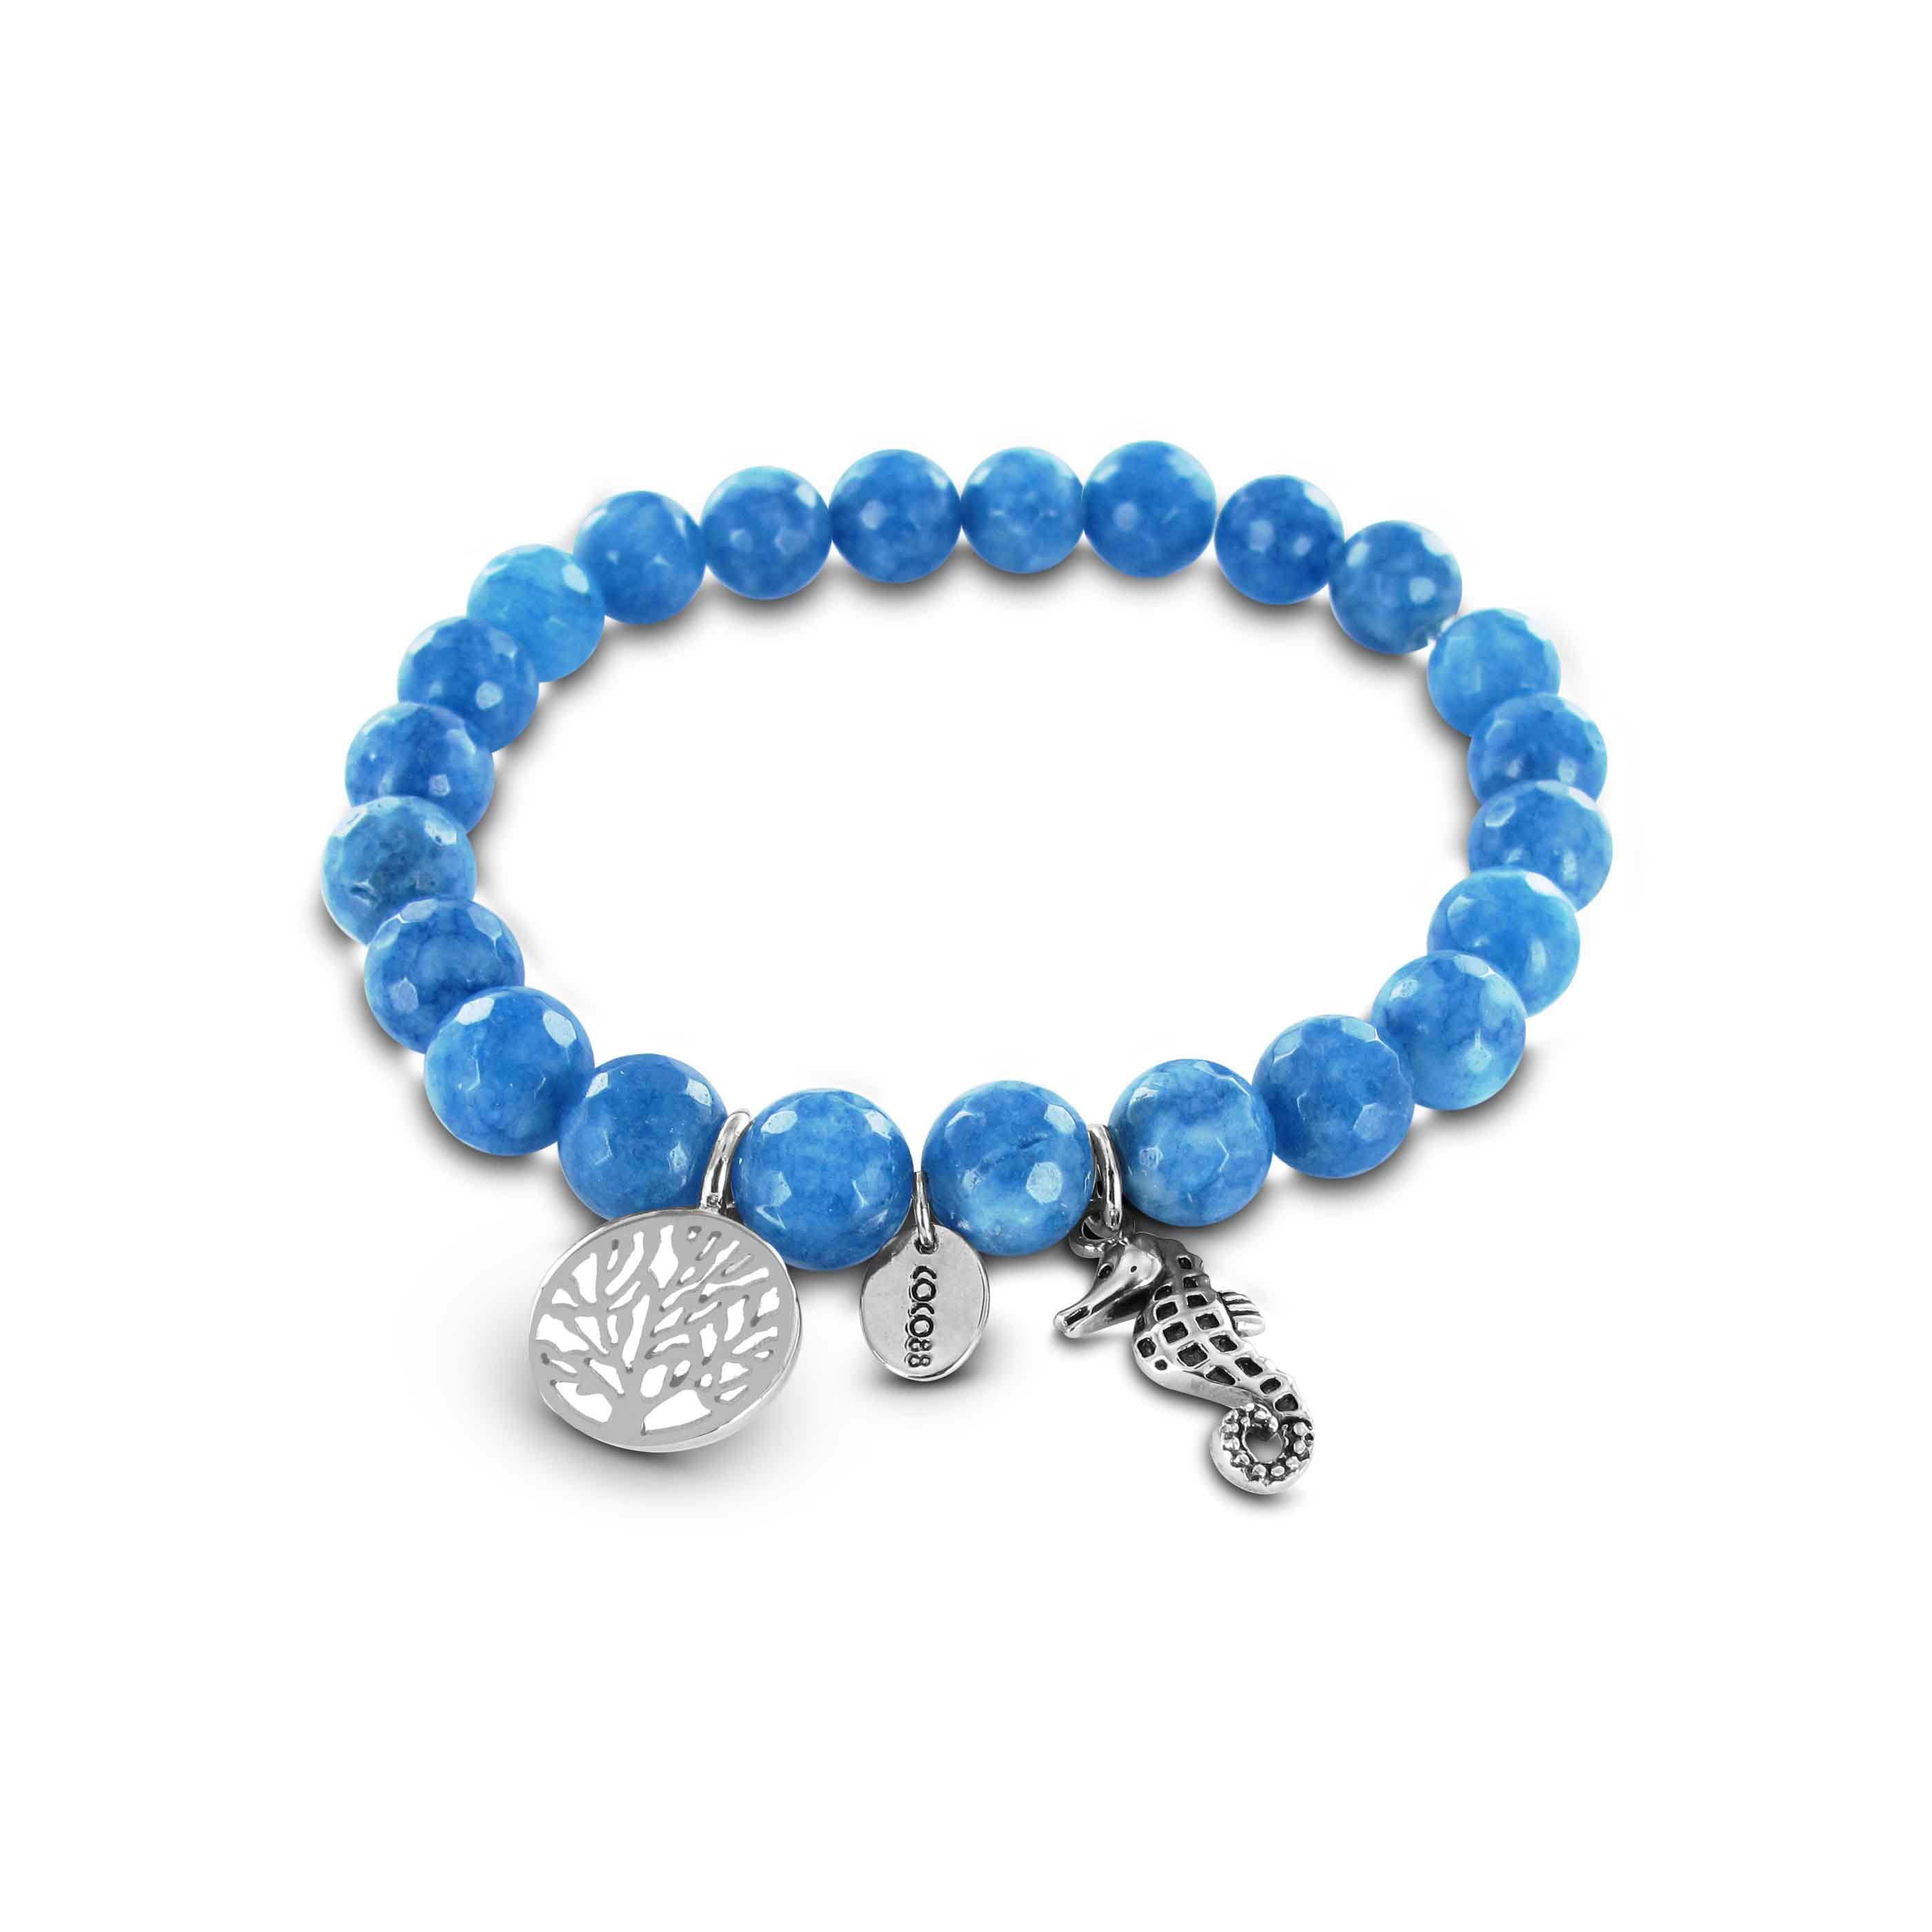 Coco88 Serenity Blue Natural Stones Jade Collection Bracelet